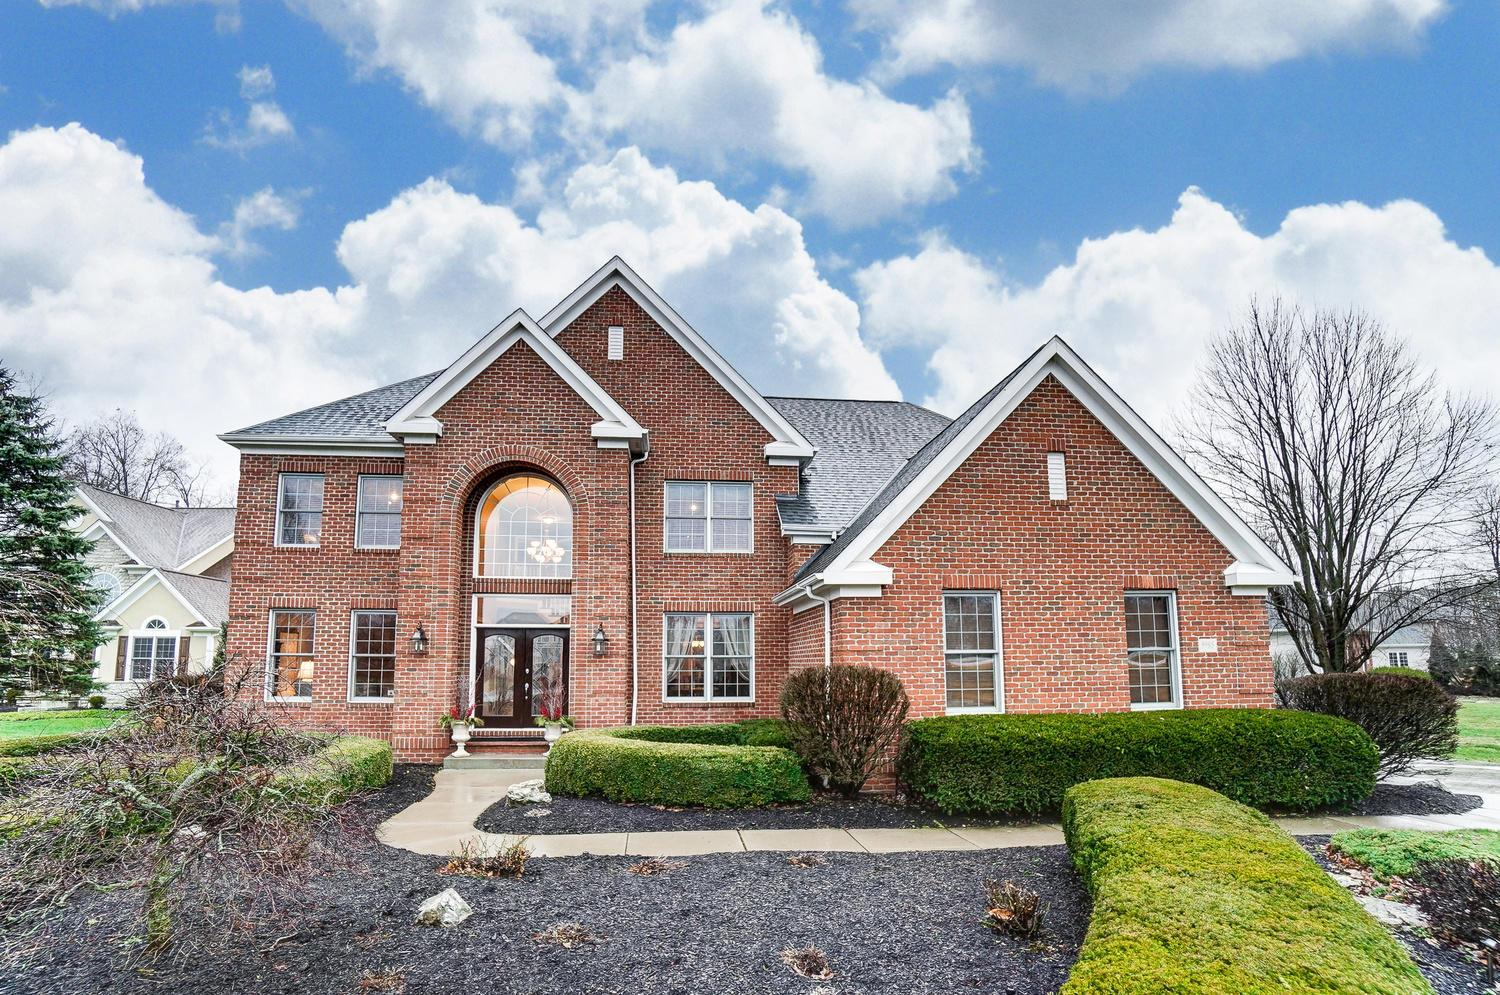 Photo of 5985 Heritage Lakes Drive, Hilliard, OH 43026